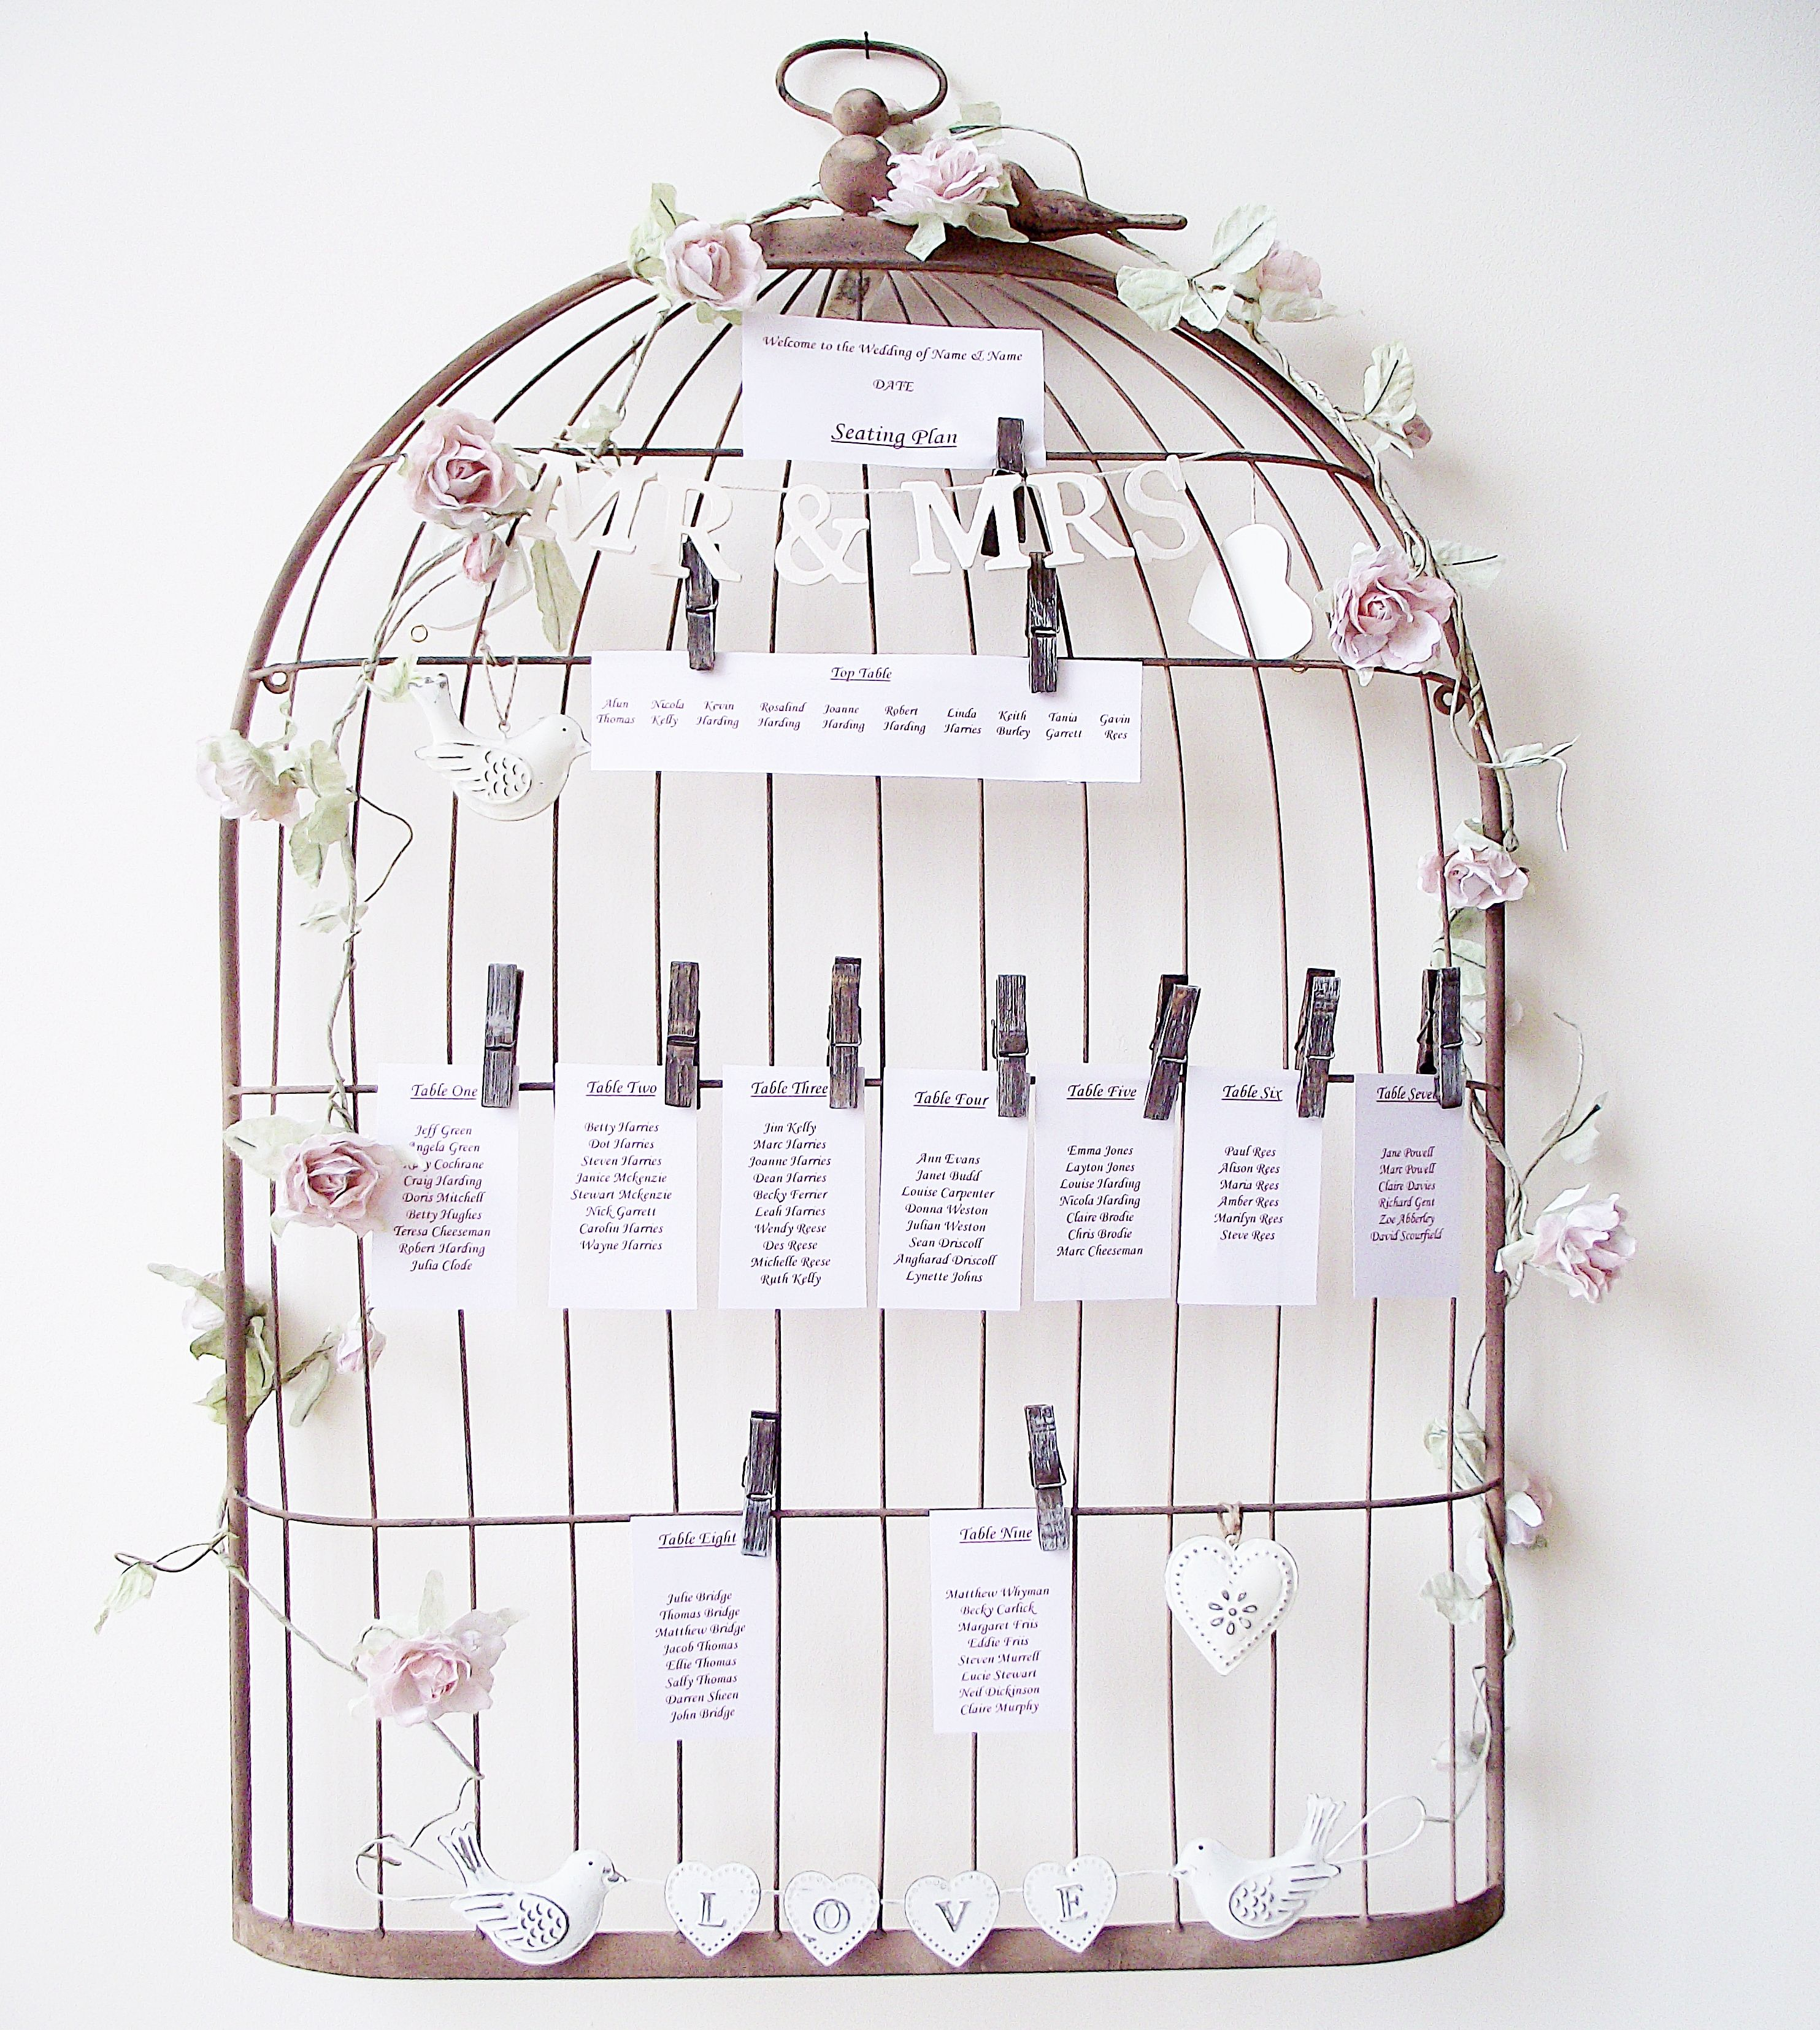 Rust effect bird cage Table Plan Holder by Big Little House